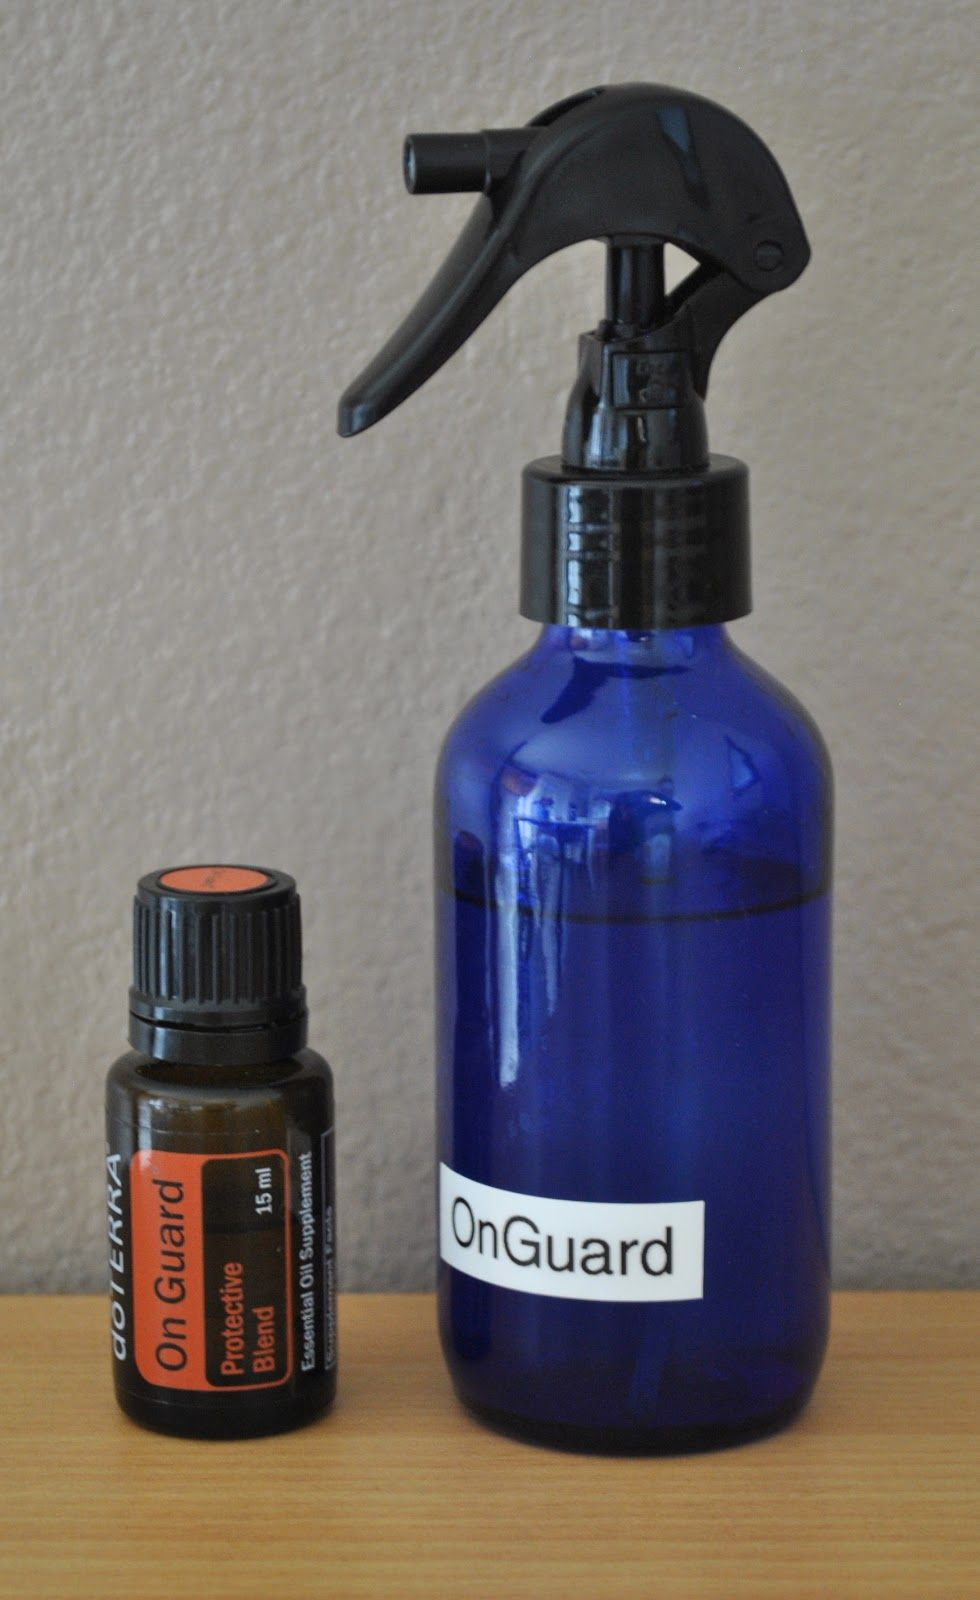 Homemade disinfectant spray using water and essential oils